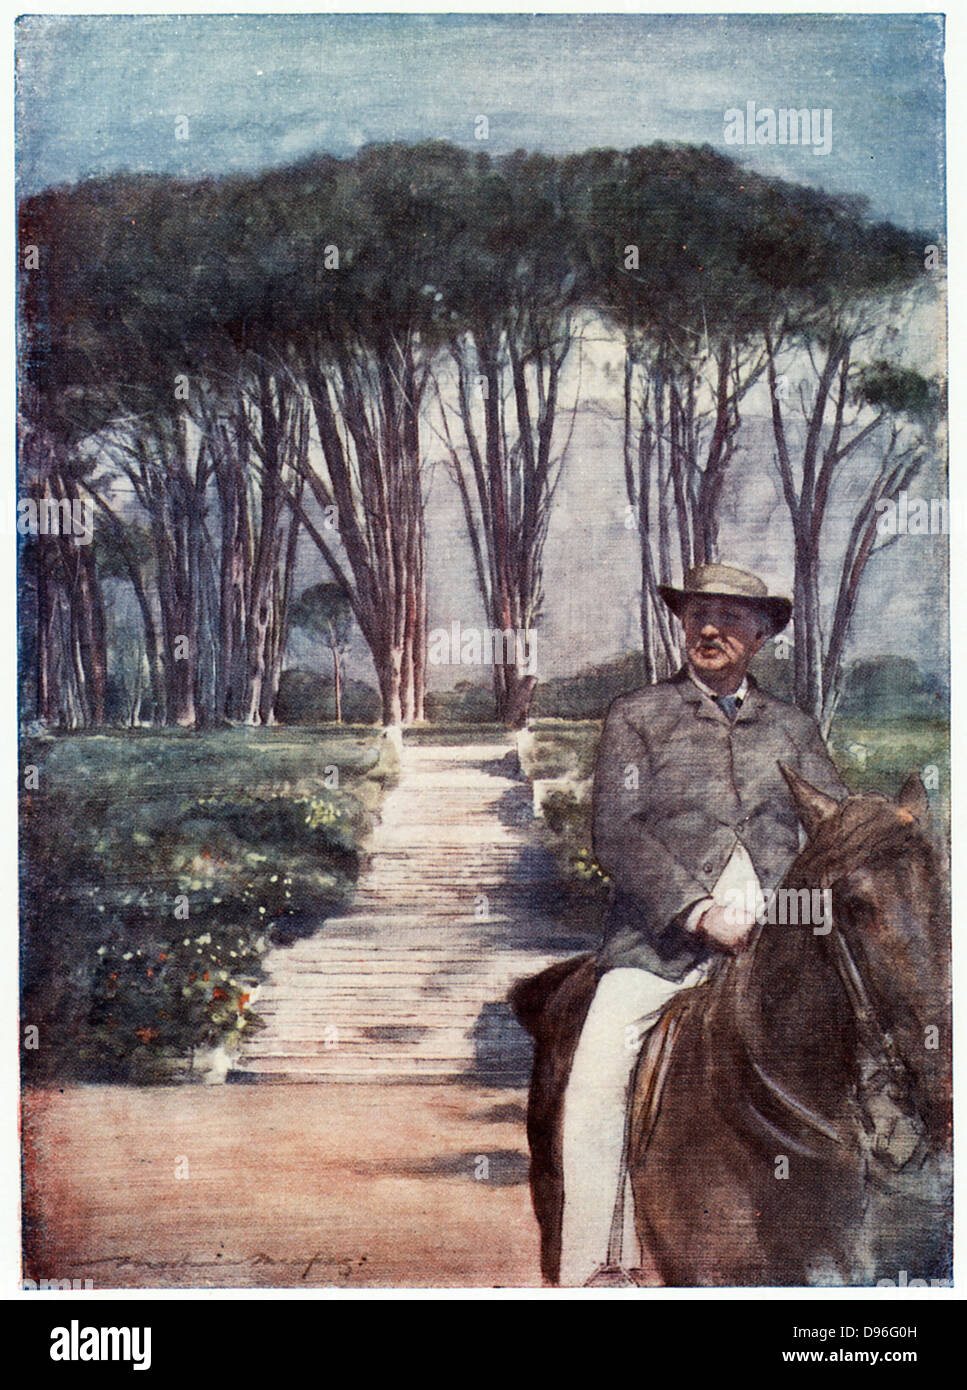 Cecil John Rhodes(1852-1902) English-born South African statesman. Rhodes riding in the grounds of Groote Schuur. - Stock Image